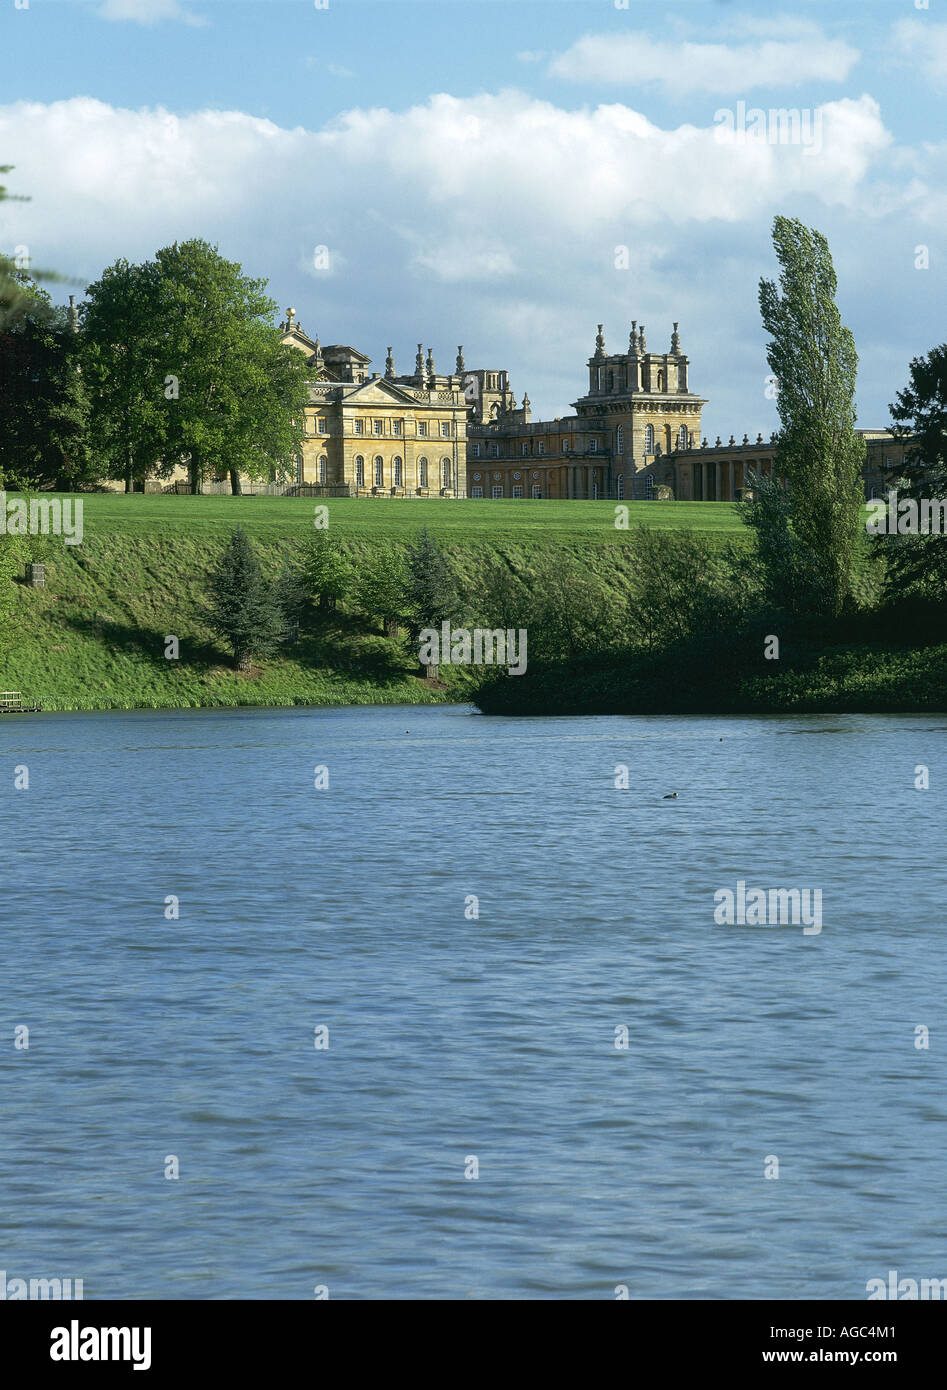 View across the lake to the stately home of Blenheim Palace Designed by Sir John Vanbrugh and Nicholas Hawksmoor given by Queen Anne to John Churchill first Duke of Marlborough 1650 1722 - Stock Image